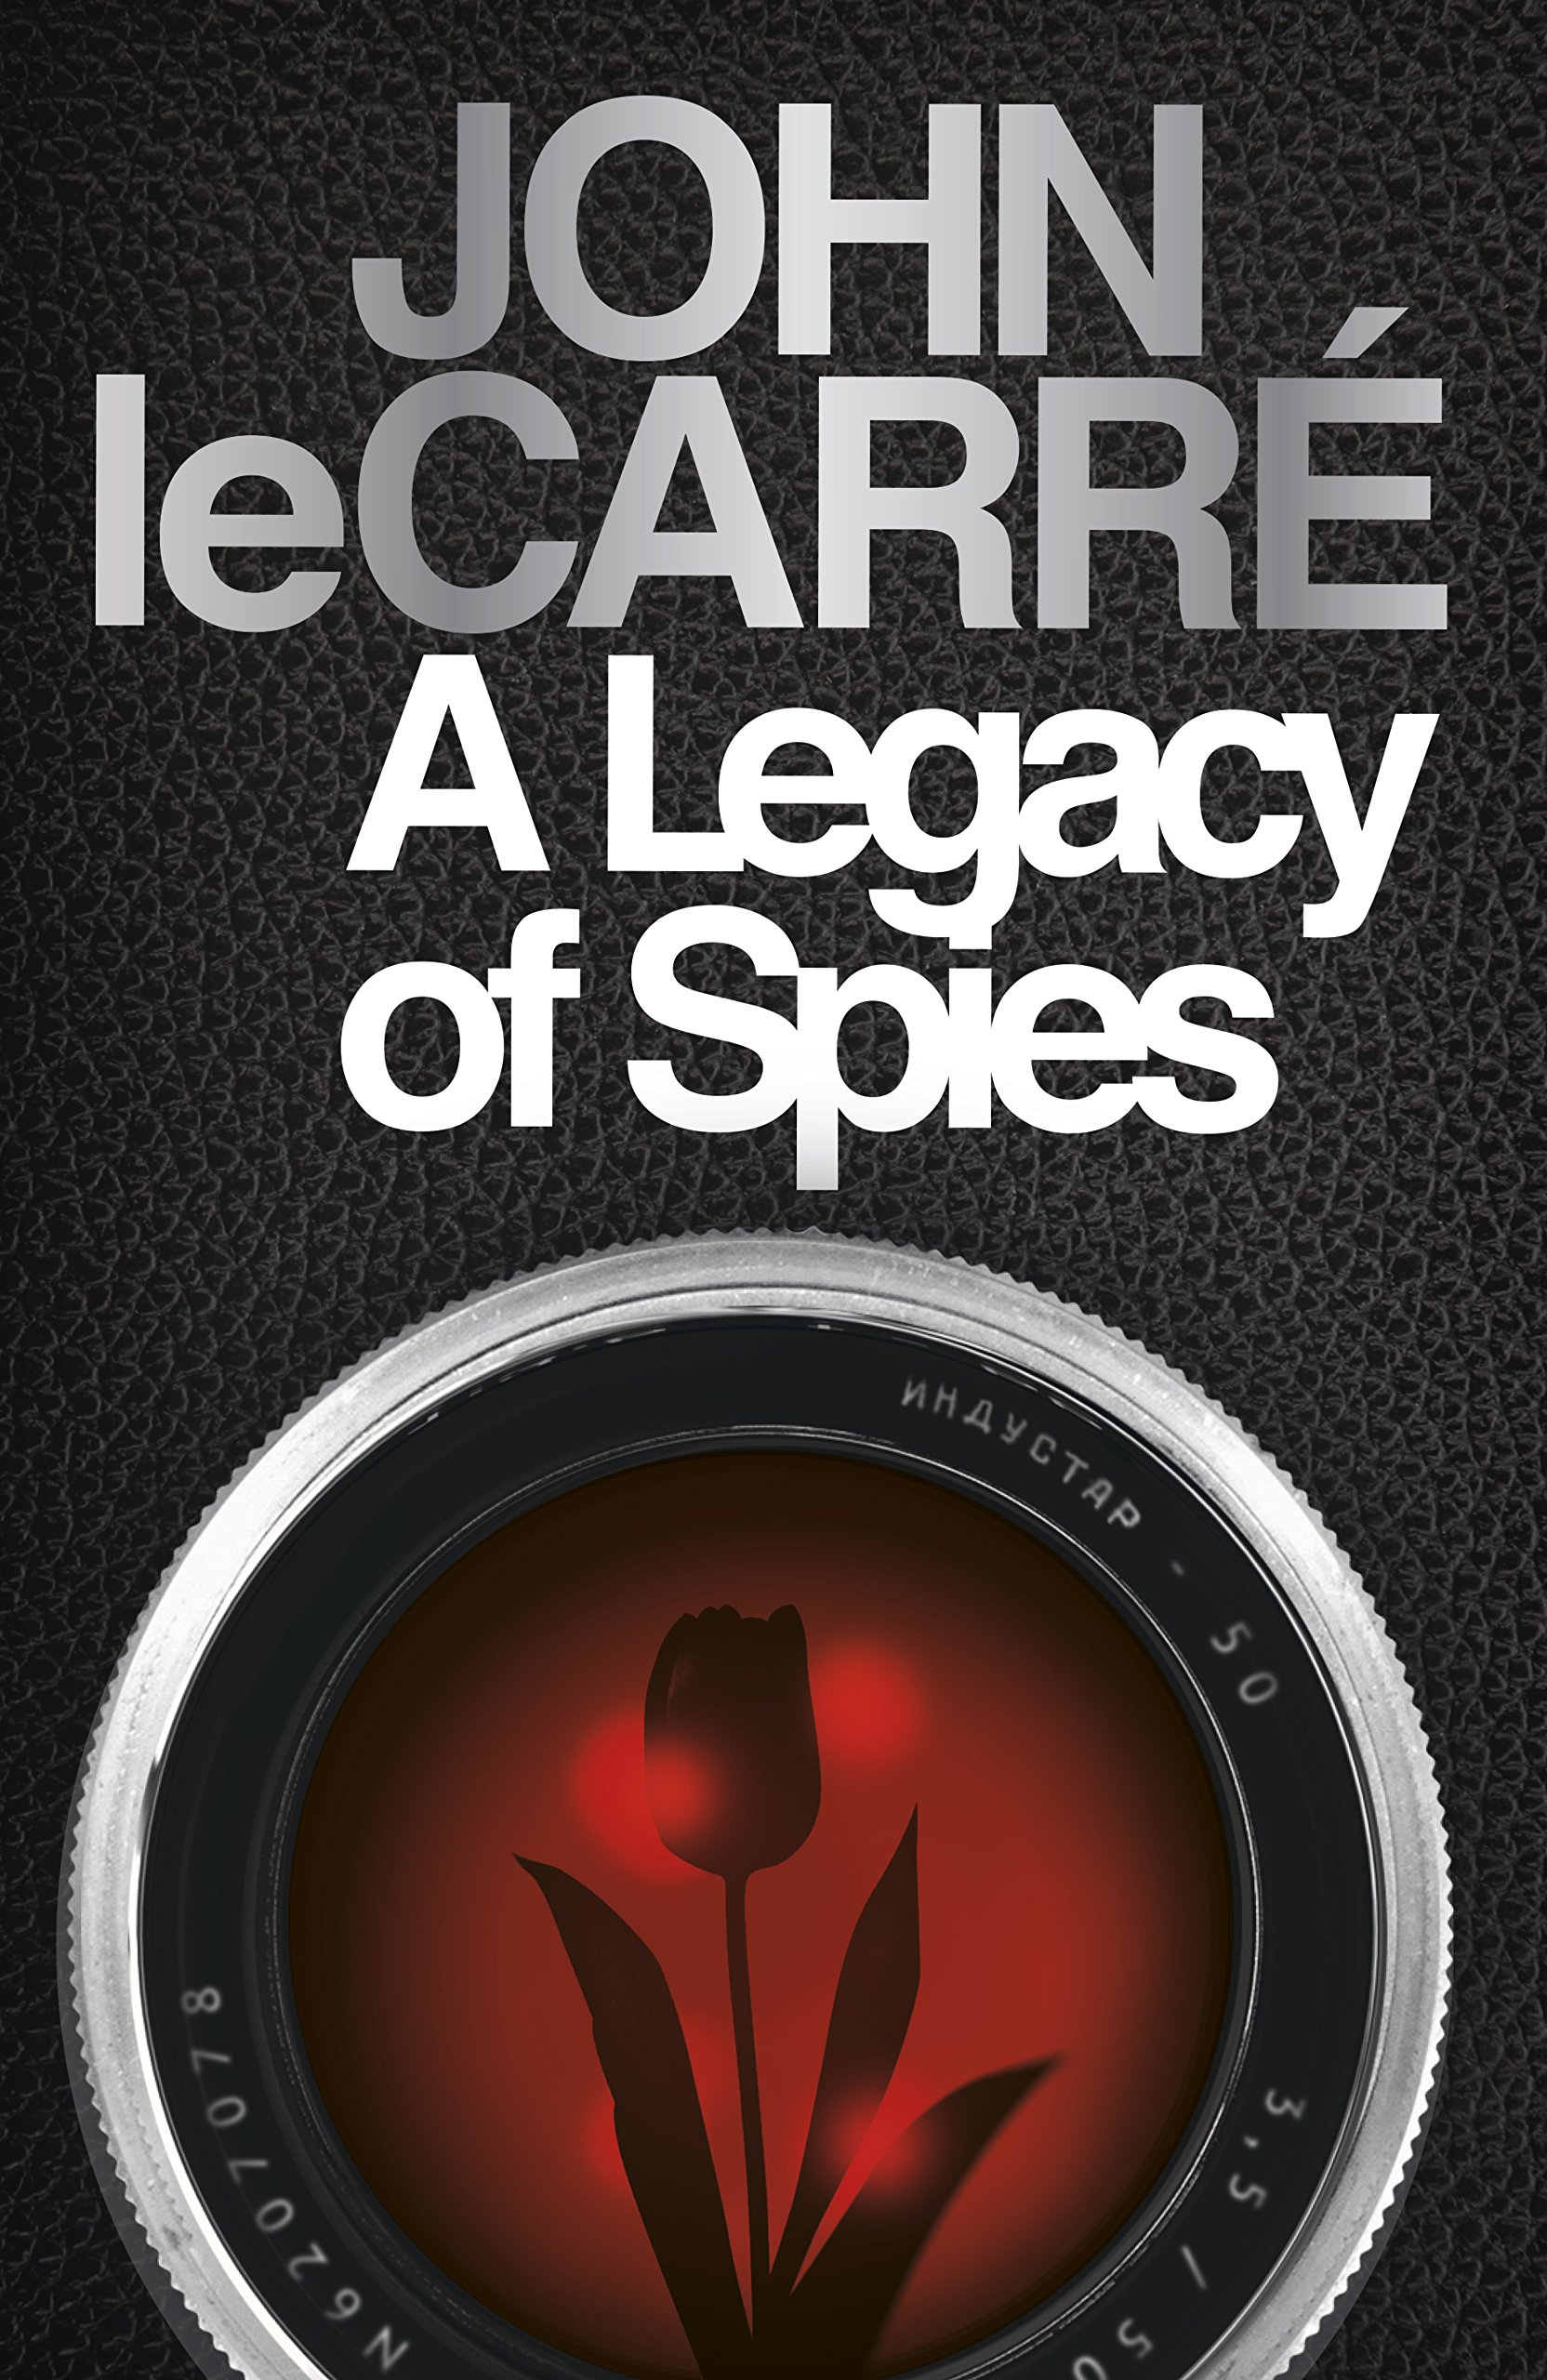 John le Carré: A Legacy of Spies